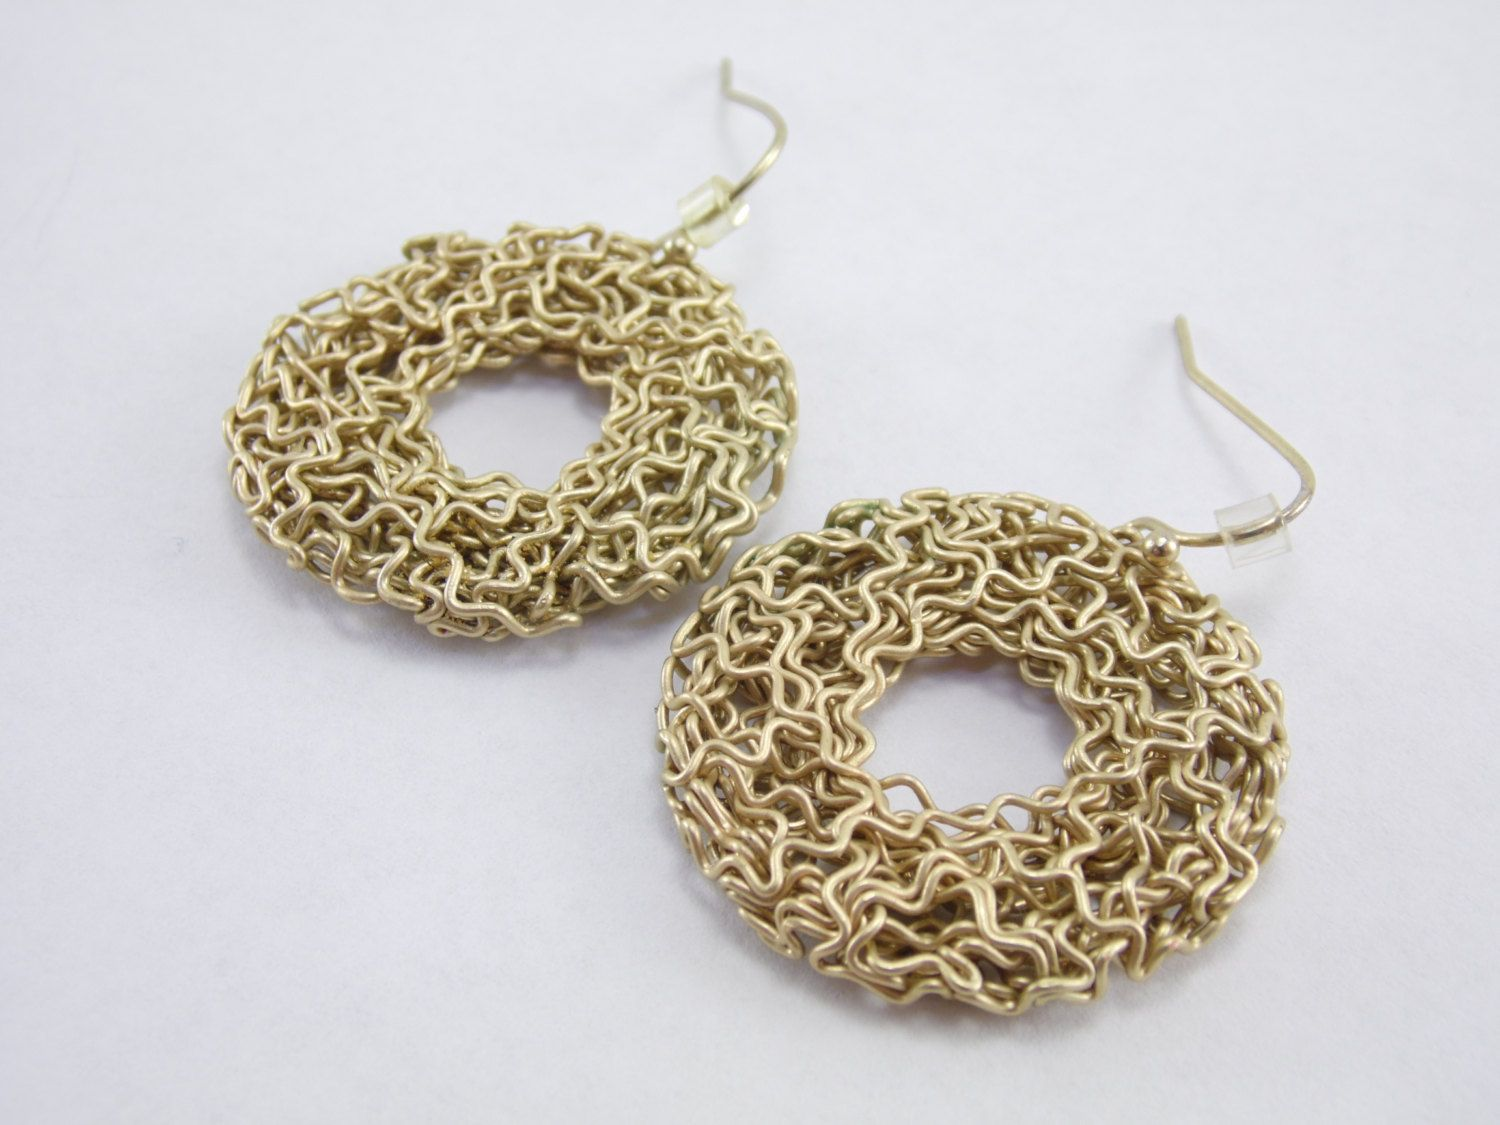 Designer- N/A Size- 1 1/4 Inch Diameter Features- Brass wire wrapped ...